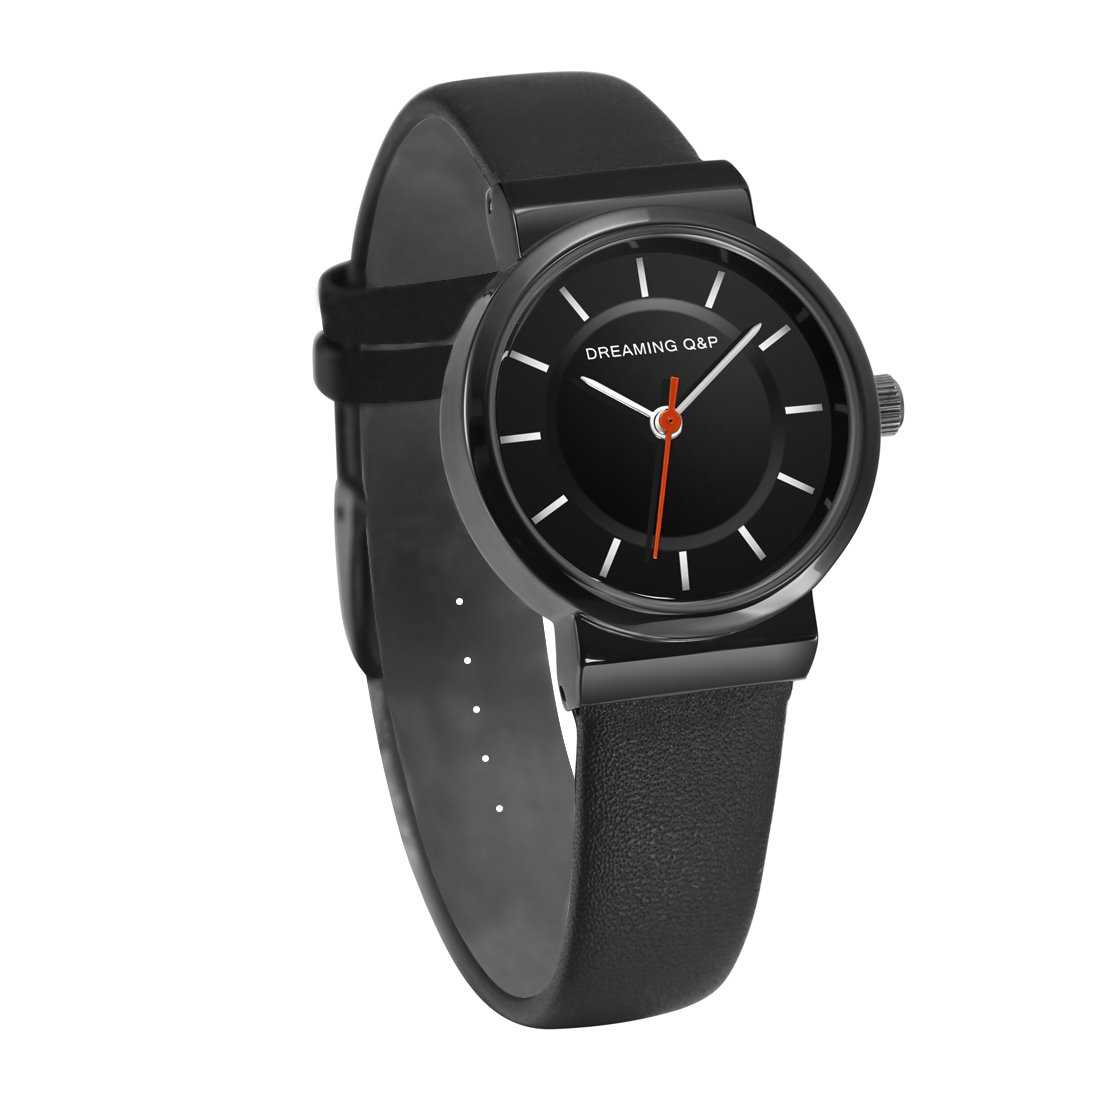 Women's Black Leather Dress Watch,Simple Style Casual Small Wrist Watches for Woman WD260